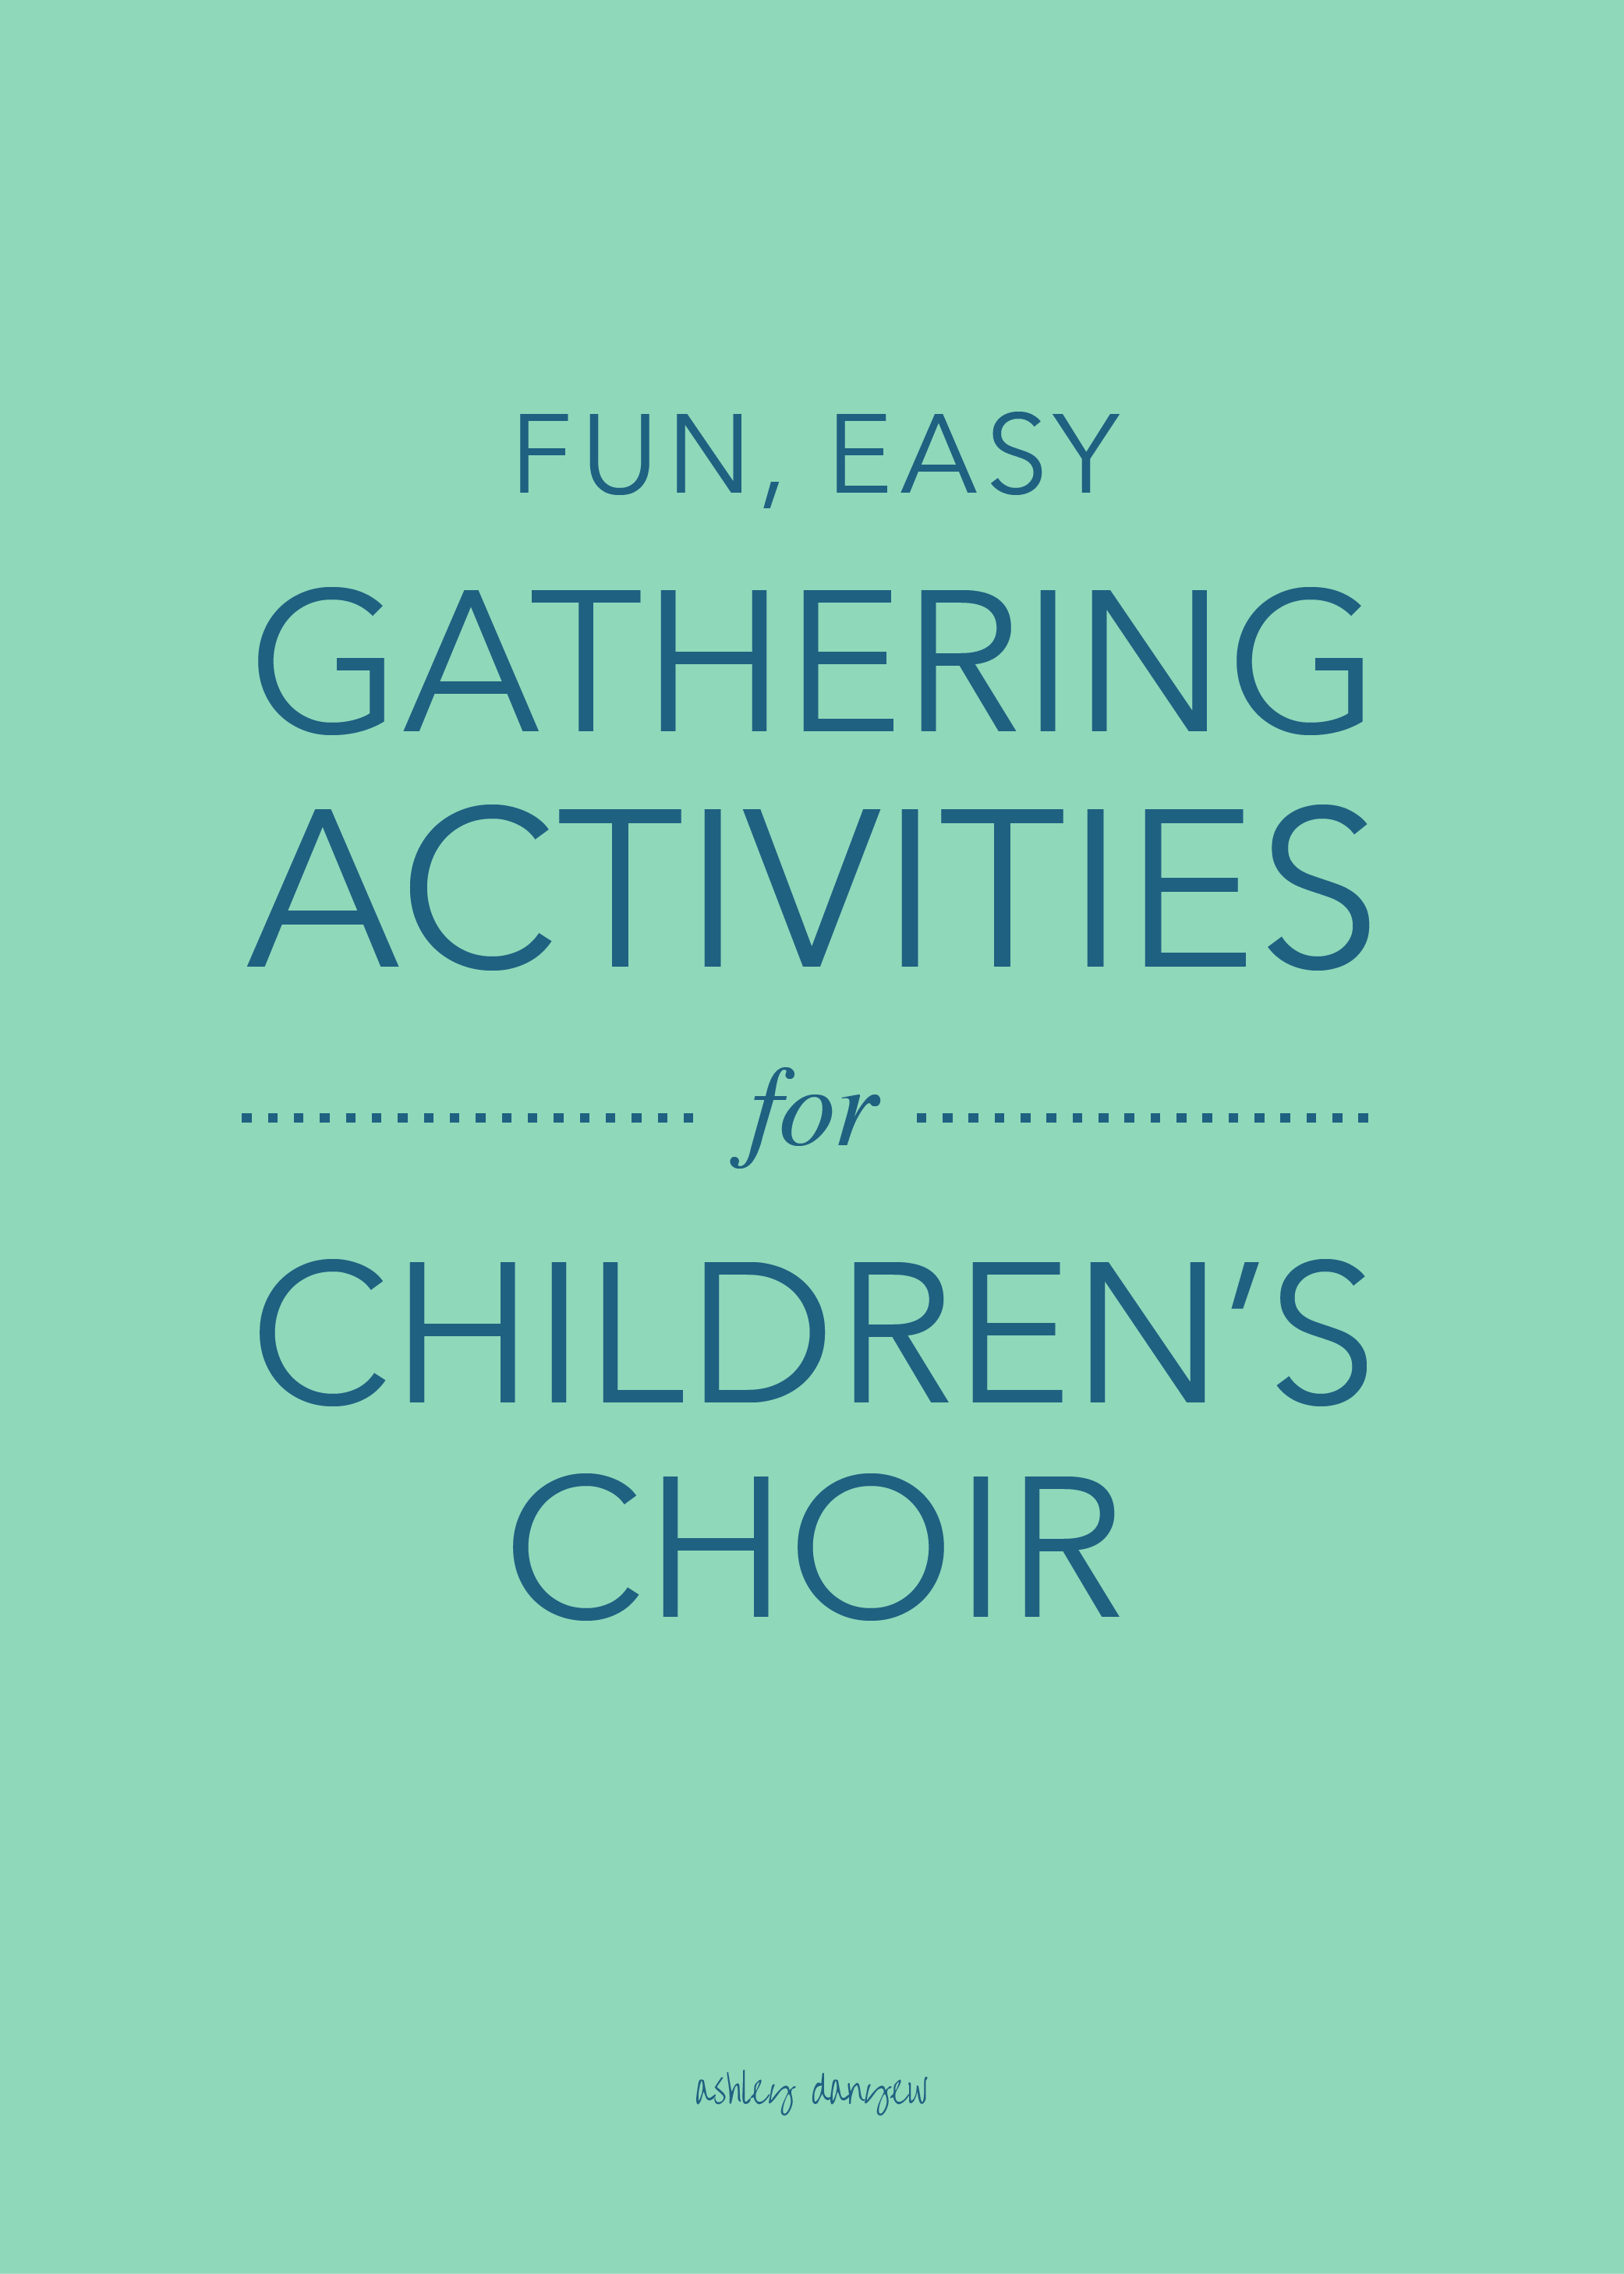 Fun-Easy-Gathering-Activities-for-Childrens-Choir-01.png